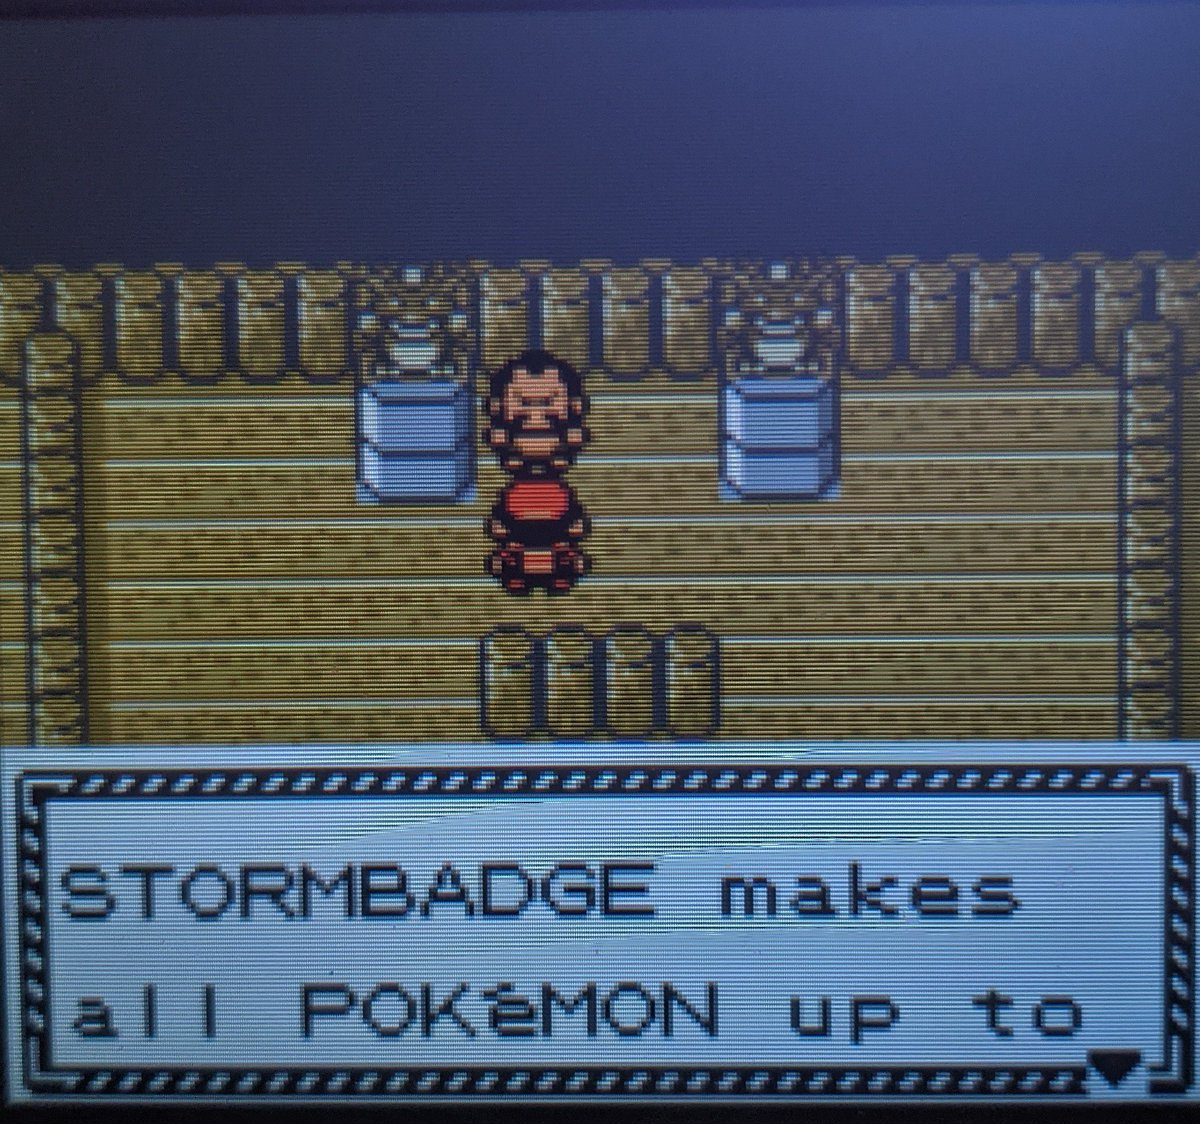 Opted to go to Cianwood first, beat chuck with ease! #PokemonCrystal #Pokemon25